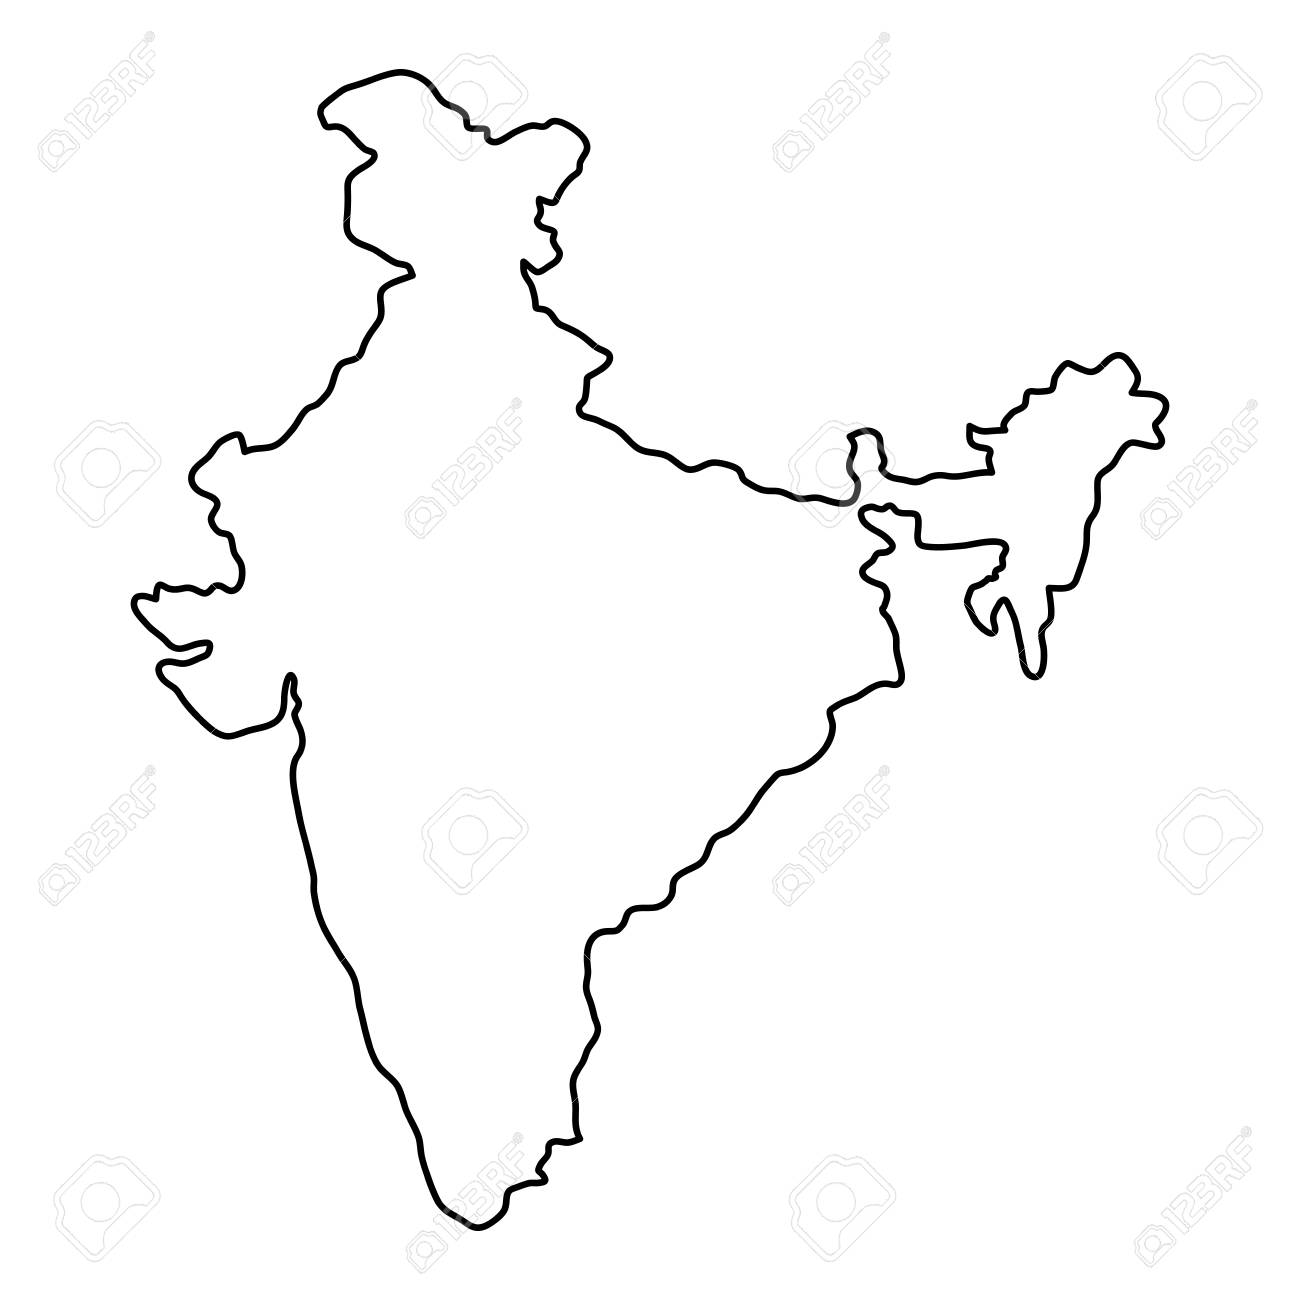 India map of black contour curves of vector illustration on america map drawing, haiti map drawing, qatar map drawing, japan map drawing, trinidad map drawing, netherlands map drawing, nigeria map drawing, jamaica map drawing, norway map drawing, south carolina map drawing, ecuador map drawing, roman empire map drawing, finland map drawing, germany map drawing, panama map drawing, galapagos islands map drawing, israel map drawing, thailand map drawing, fertile crescent map drawing, pacific ocean map drawing,